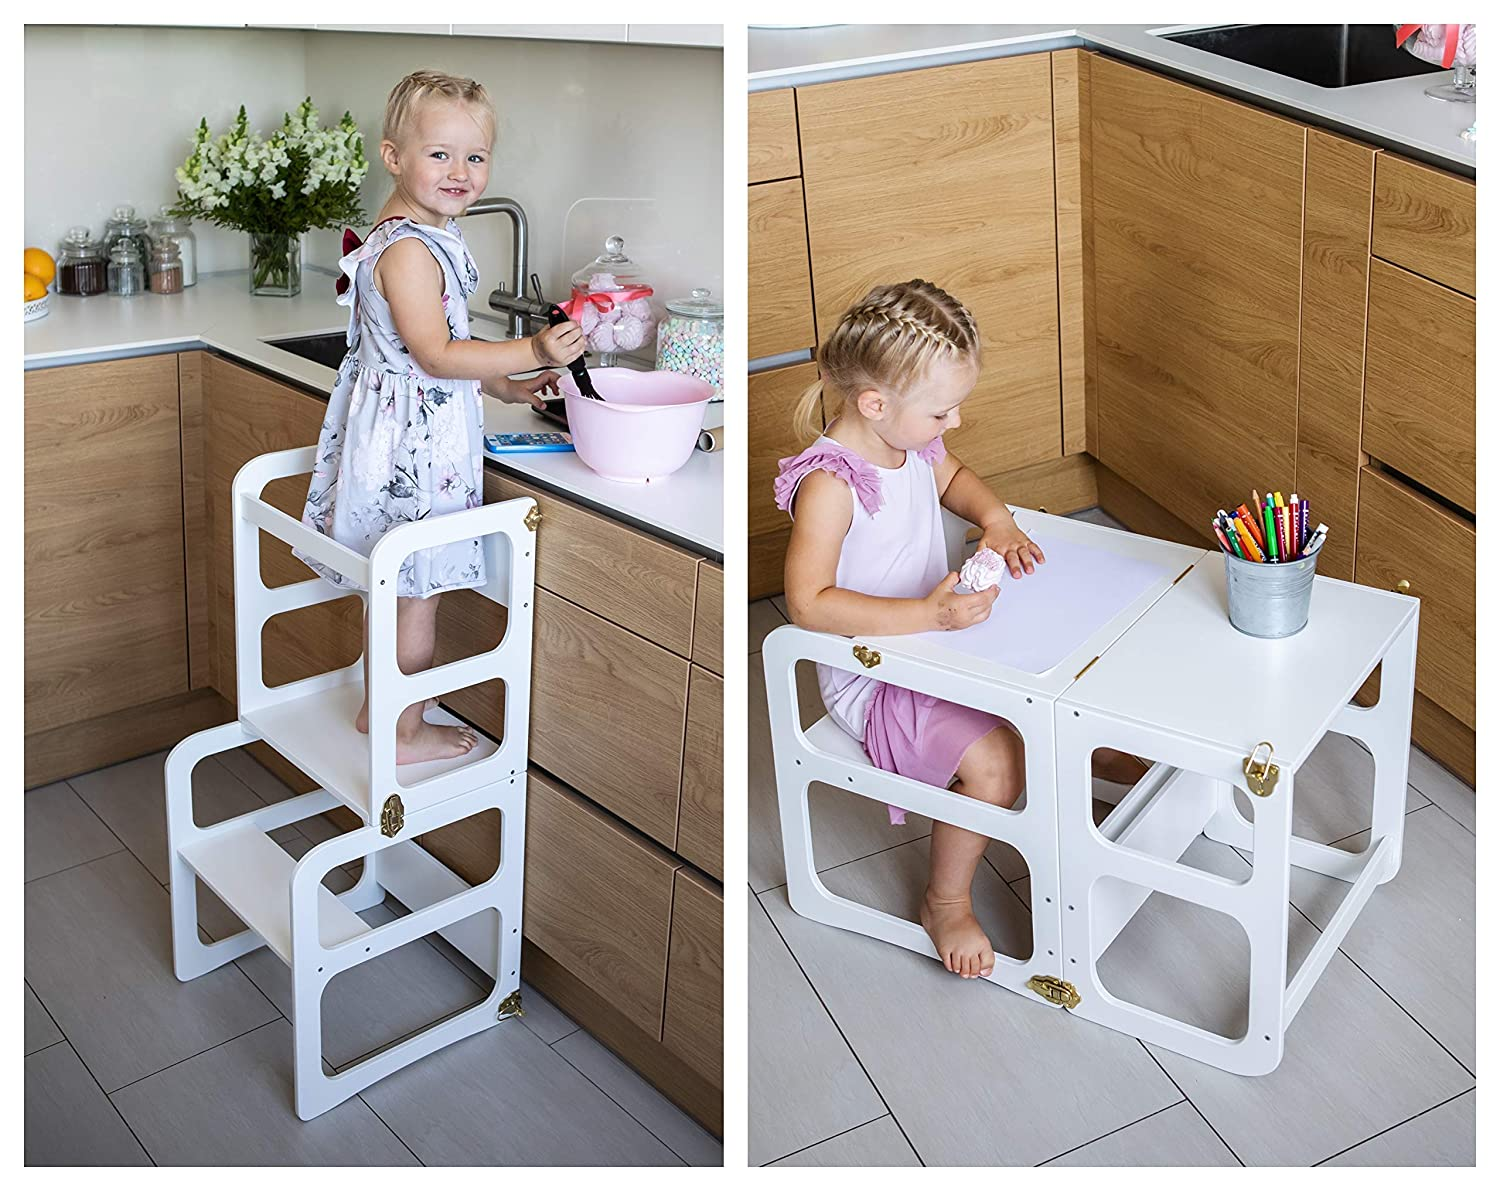 Little Bubble Learning Tower for Children Wooden Stool Kitchen Aid Learning Chair Childrens Furniture Kitchen Helper Natural Transparent Made in EU